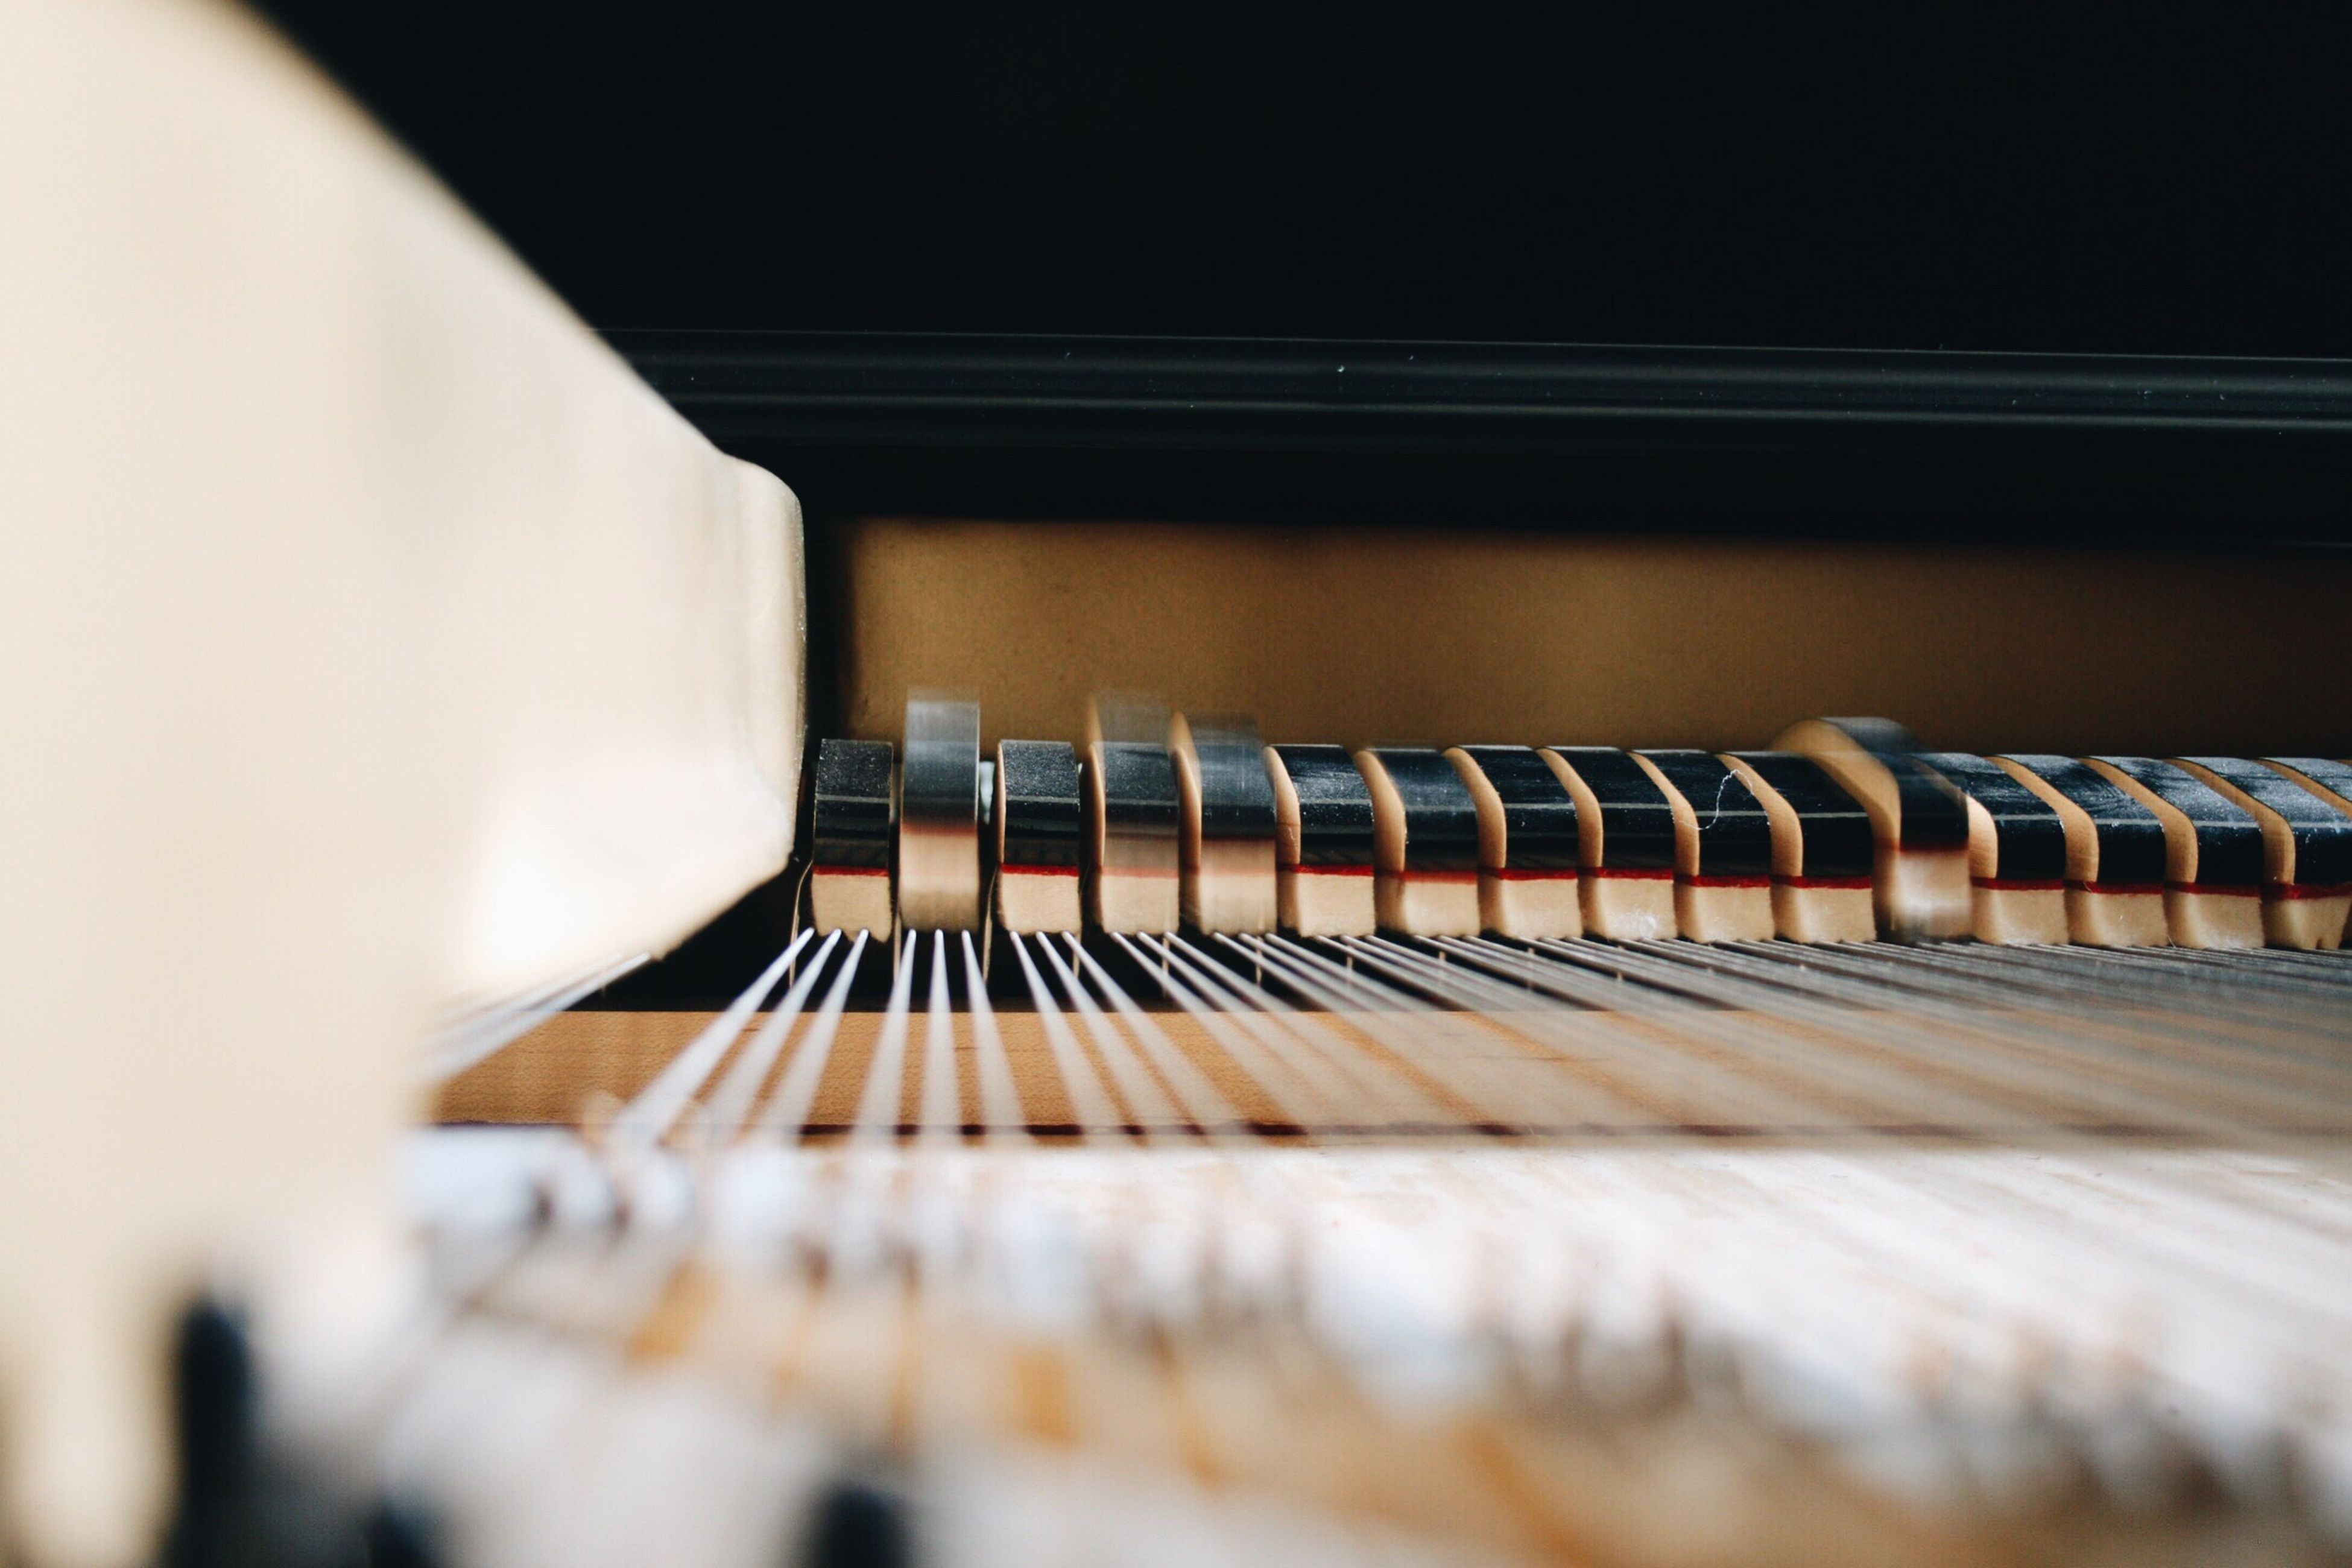 musical instrument, music, indoors, selective focus, piano, arts culture and entertainment, close-up, piano key, in a row, hobbies, surface level, musical equipment, string instrument, repetition, order, differential focus, diminishing perspective